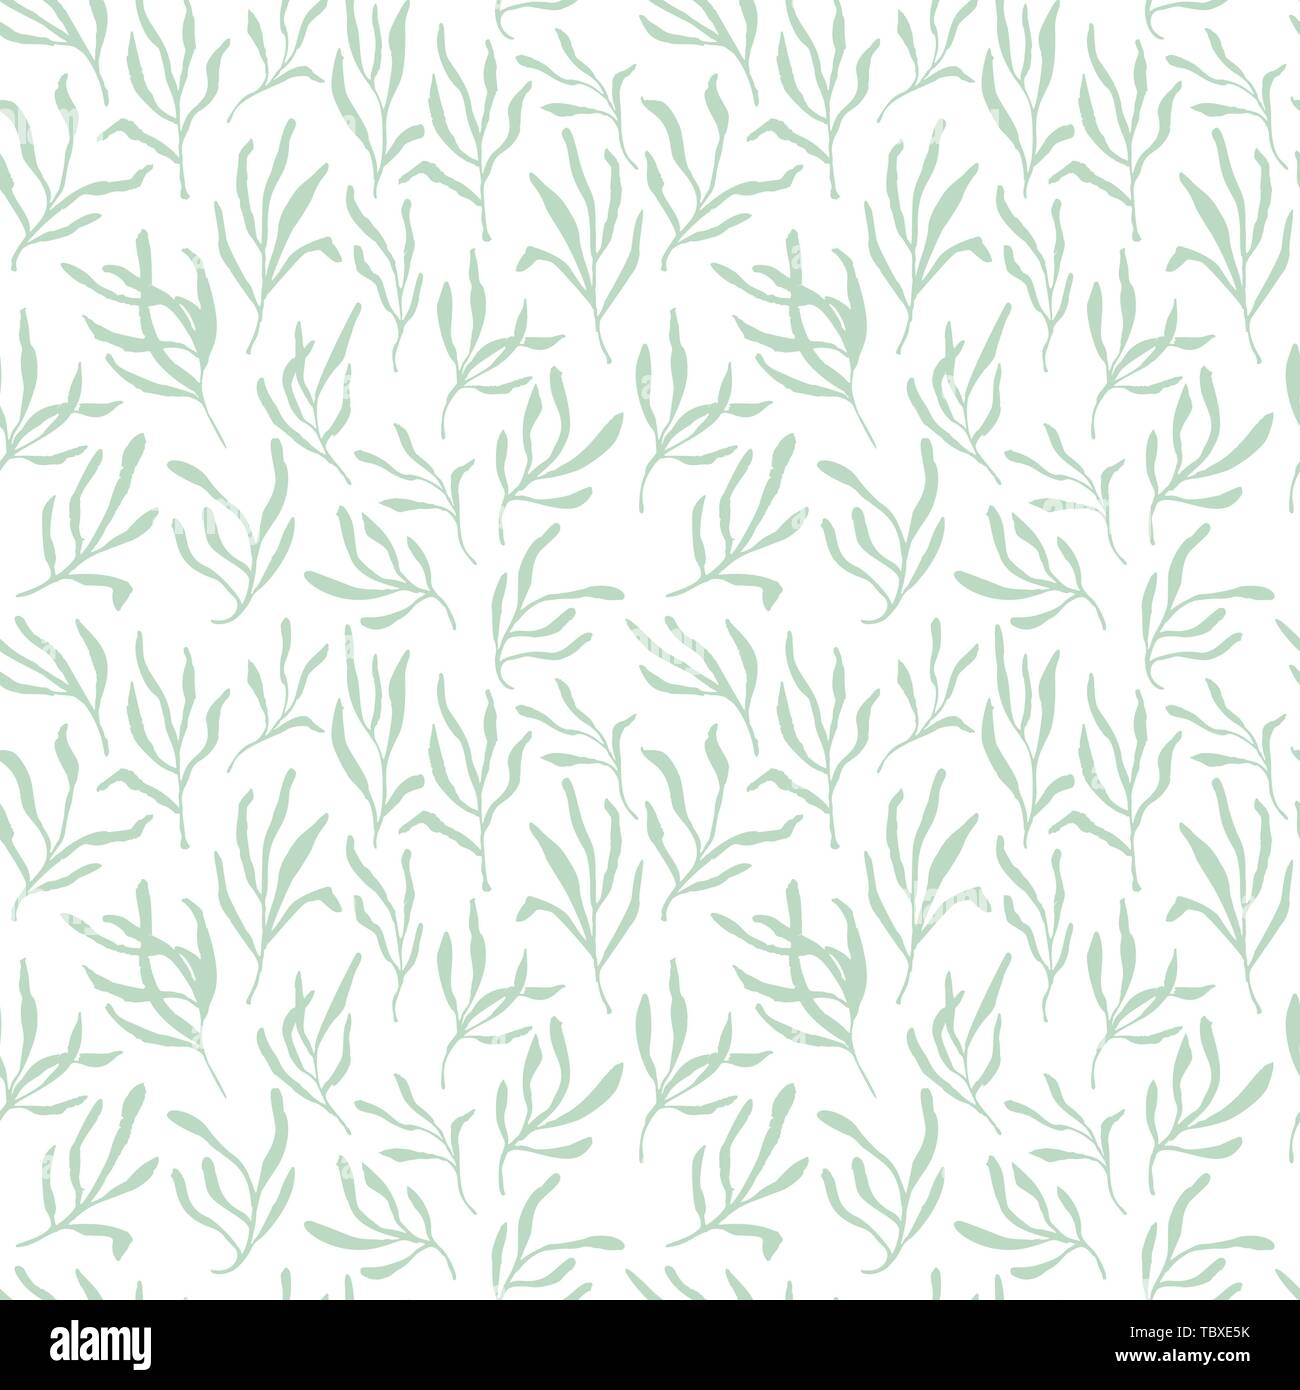 Estragon or tarragon seamless pattern therapeutic green leaf branch. Isolated rosemary vector illustration. - Stock Vector